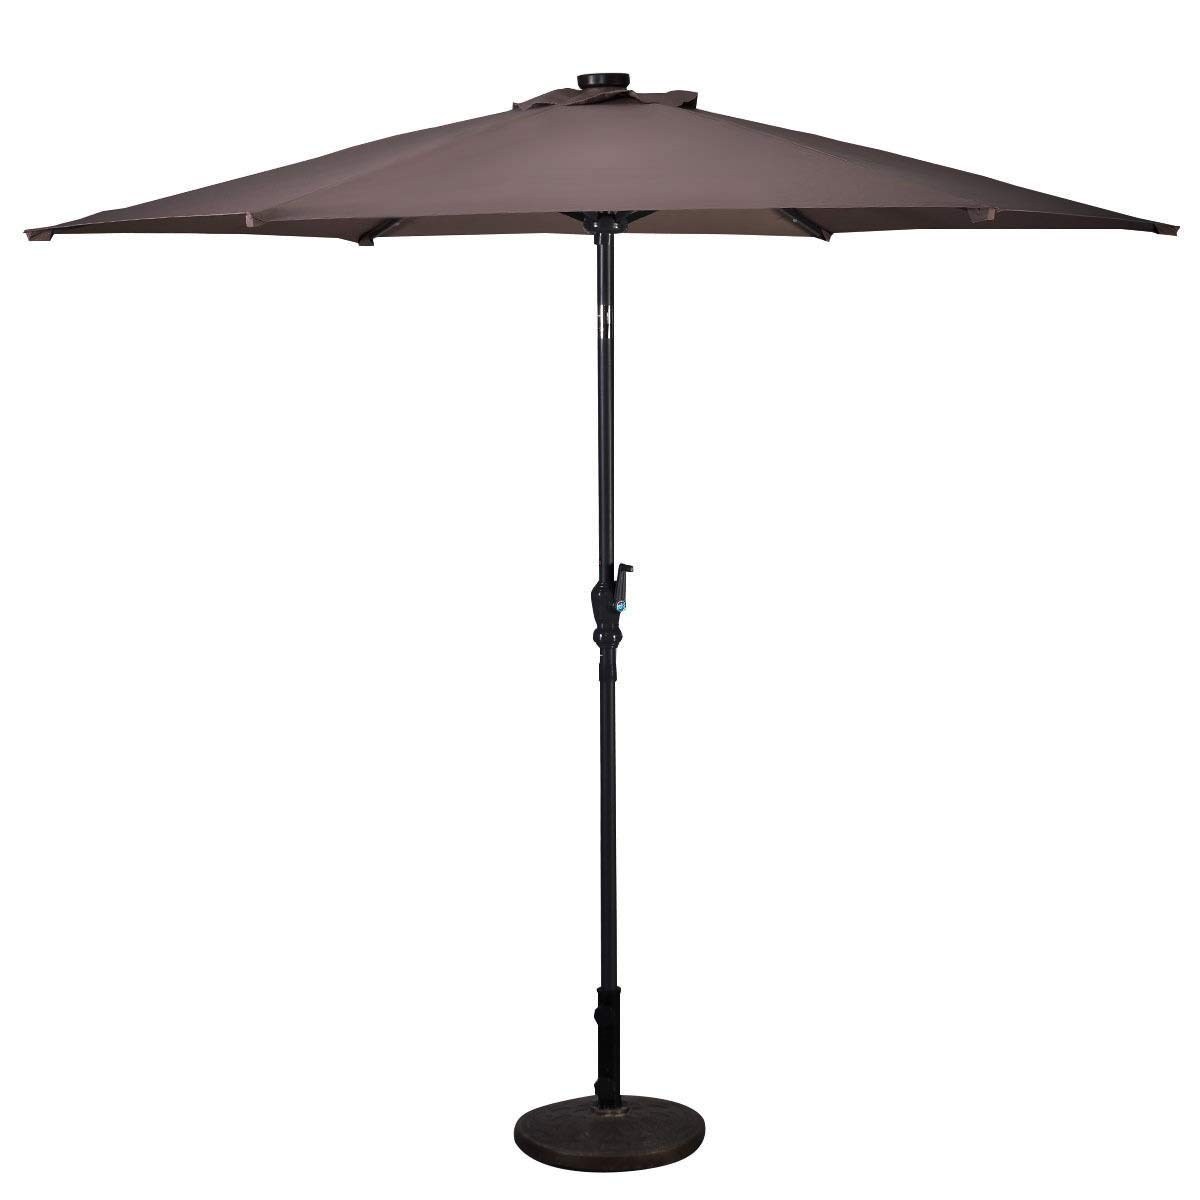 Lucky-gift - 9 ft Patio LED Solar Umbrella with Crank - Outdoor Umbrella with Led Lights - Umbrella Solar Light Lighting - Outdoor Umbrella Cover Uv Protection Tablecloth by Lucky-gift